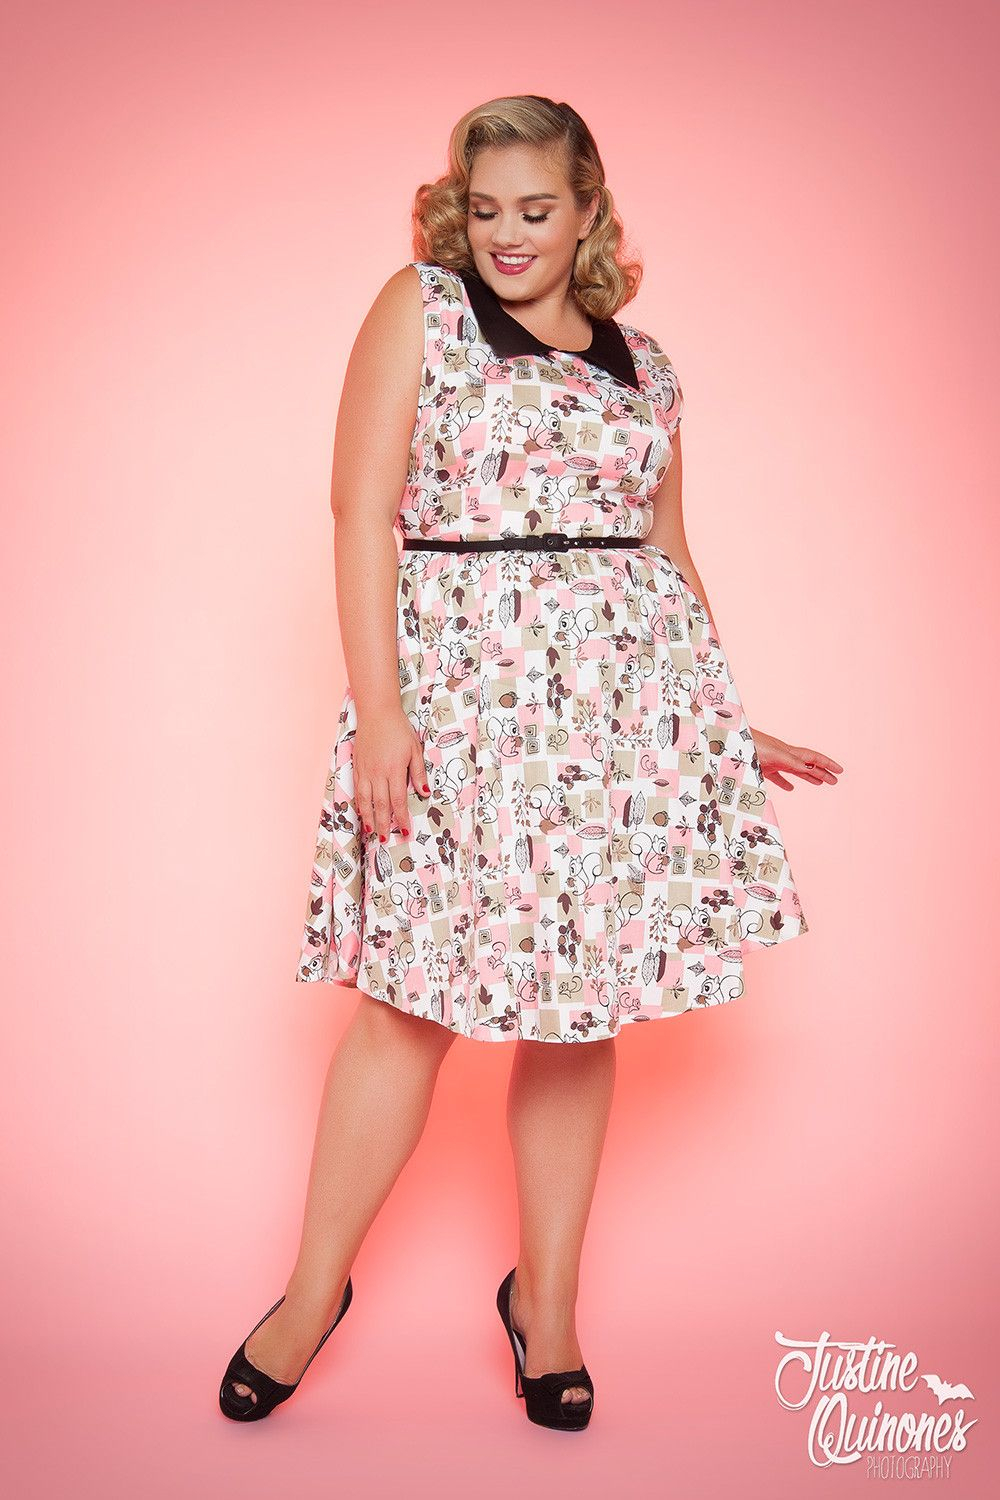 10 Pretty Pin Up Girl Clothing Ideas junebugs dress in squirrel print plus size pinup girl clothing